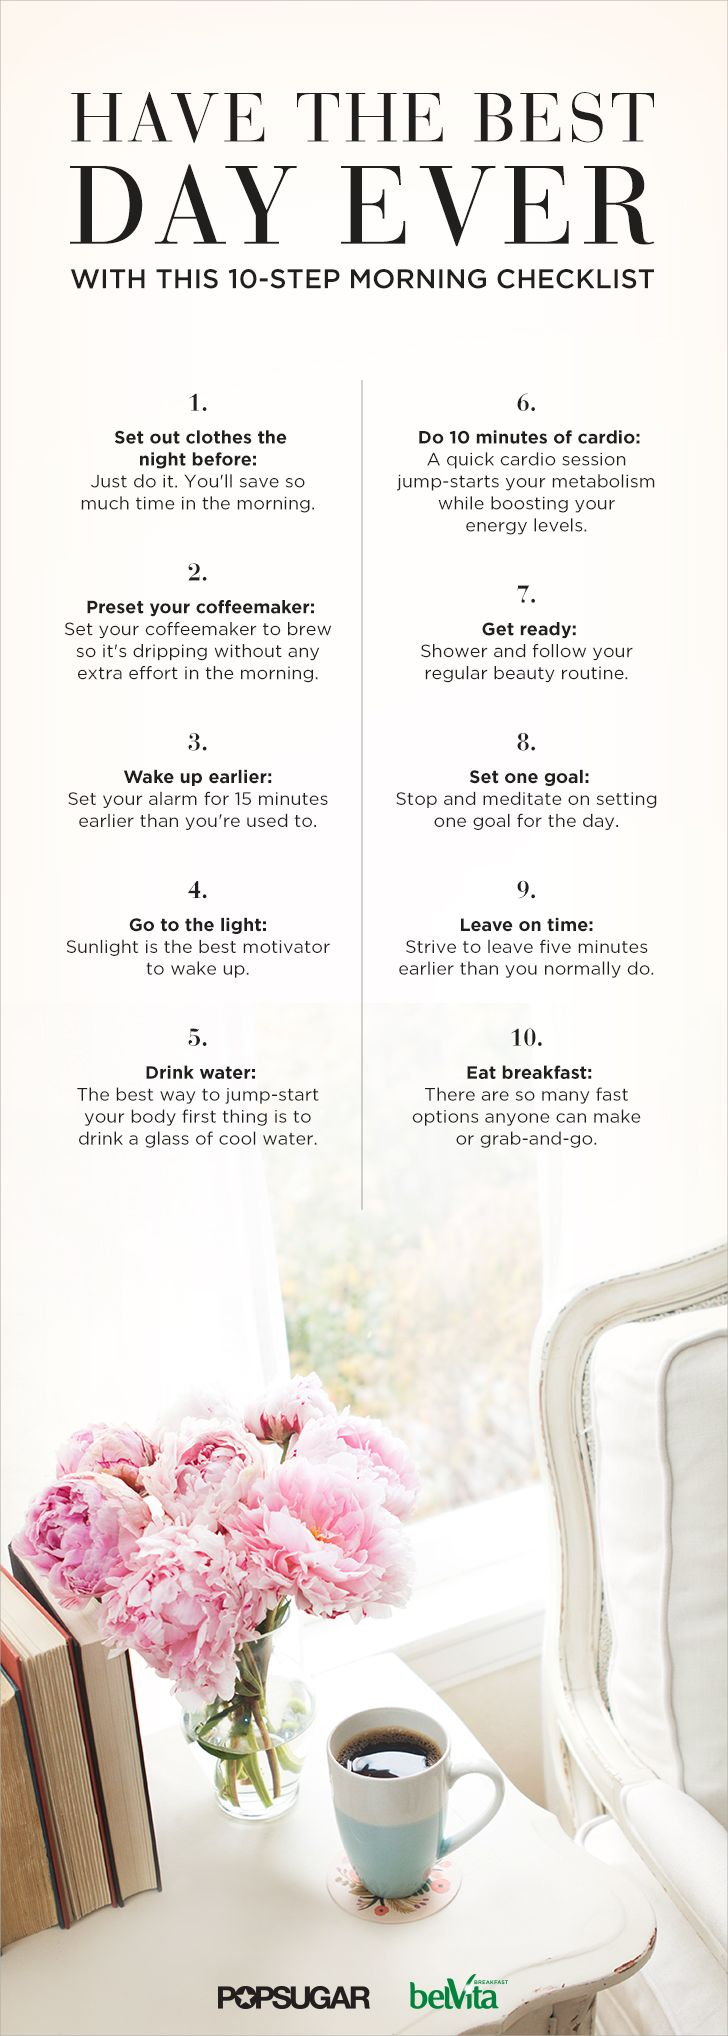 Have the Best Day Ever With This 10-Step Morning Checklist #morningroutine